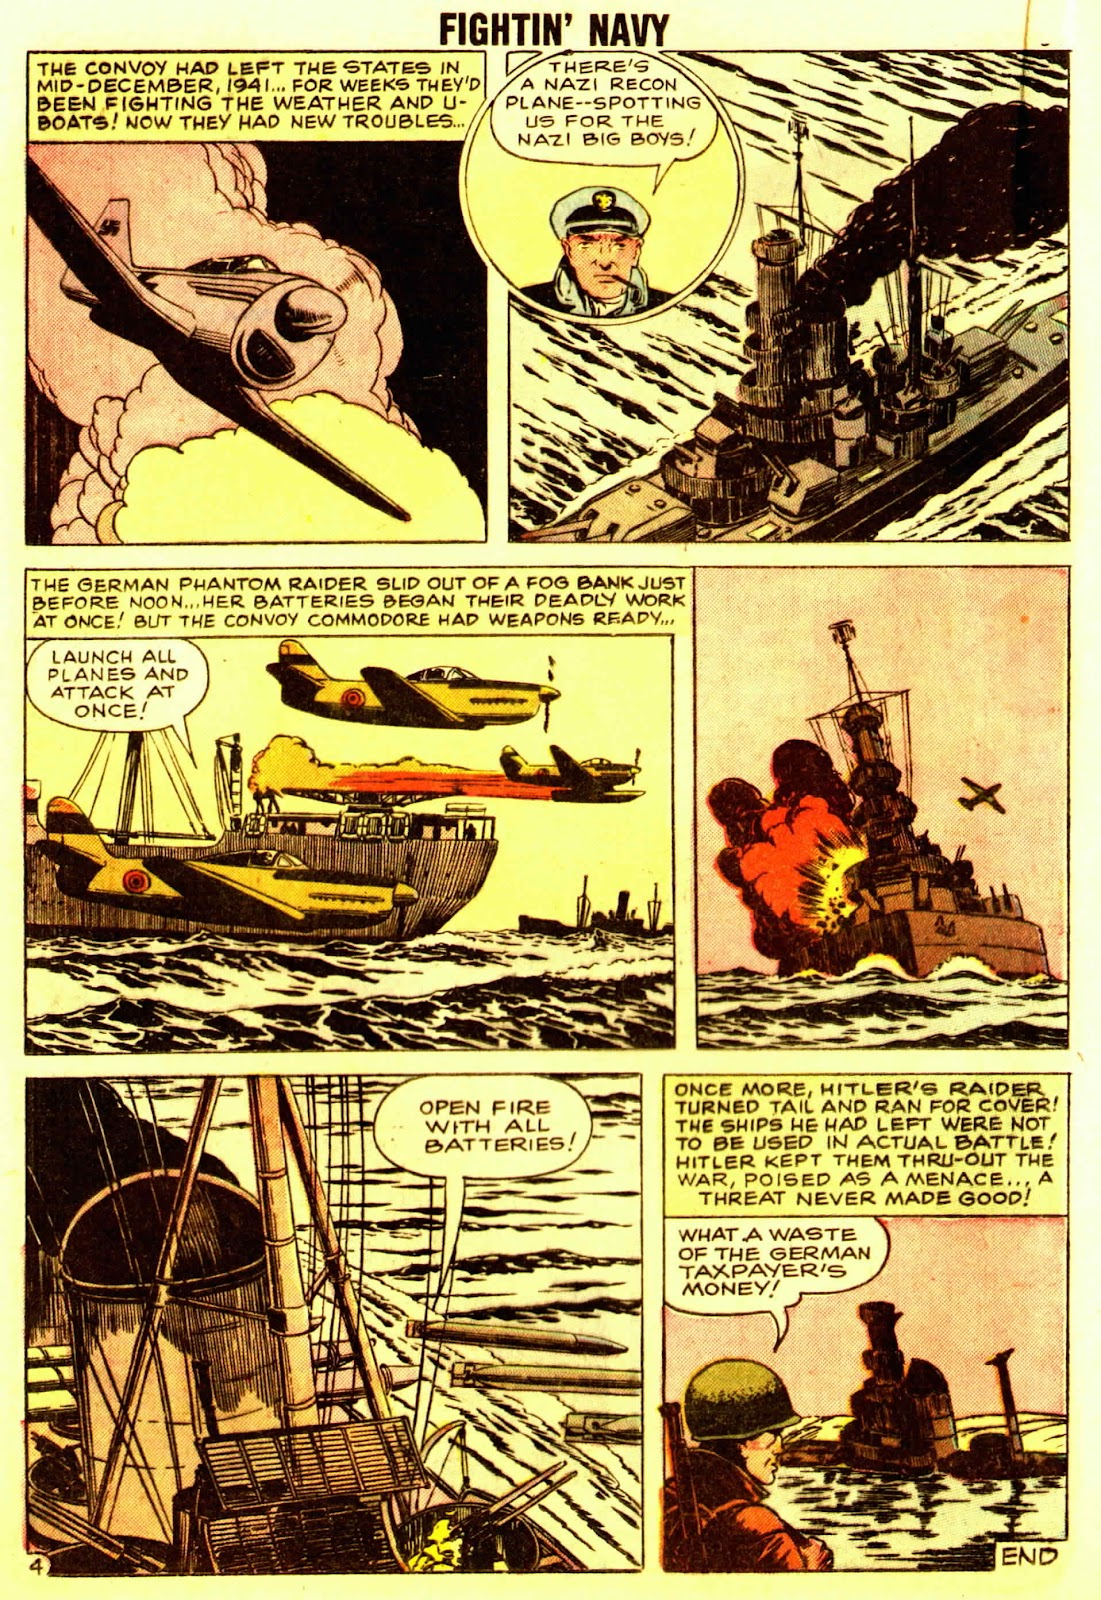 Read online Fightin' Navy comic -  Issue #83 - 36